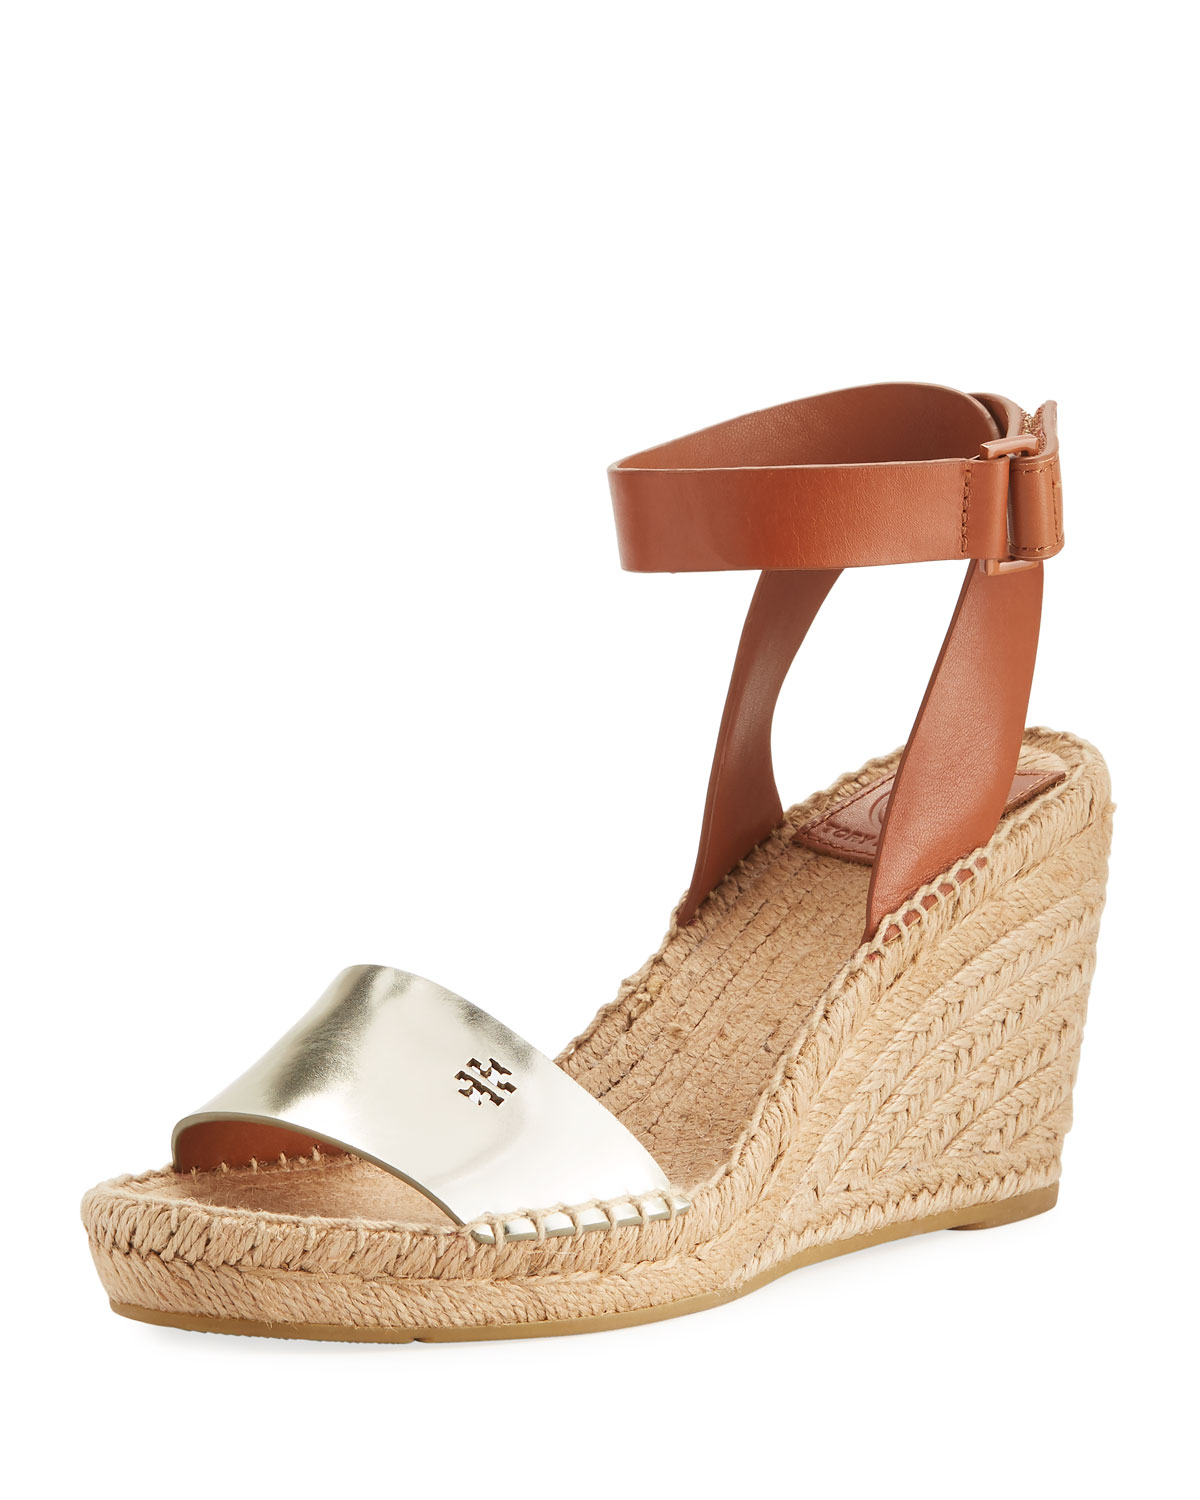 1f82b024ea27 Tory Burch Bima Two-Tone Wedge Espadrille